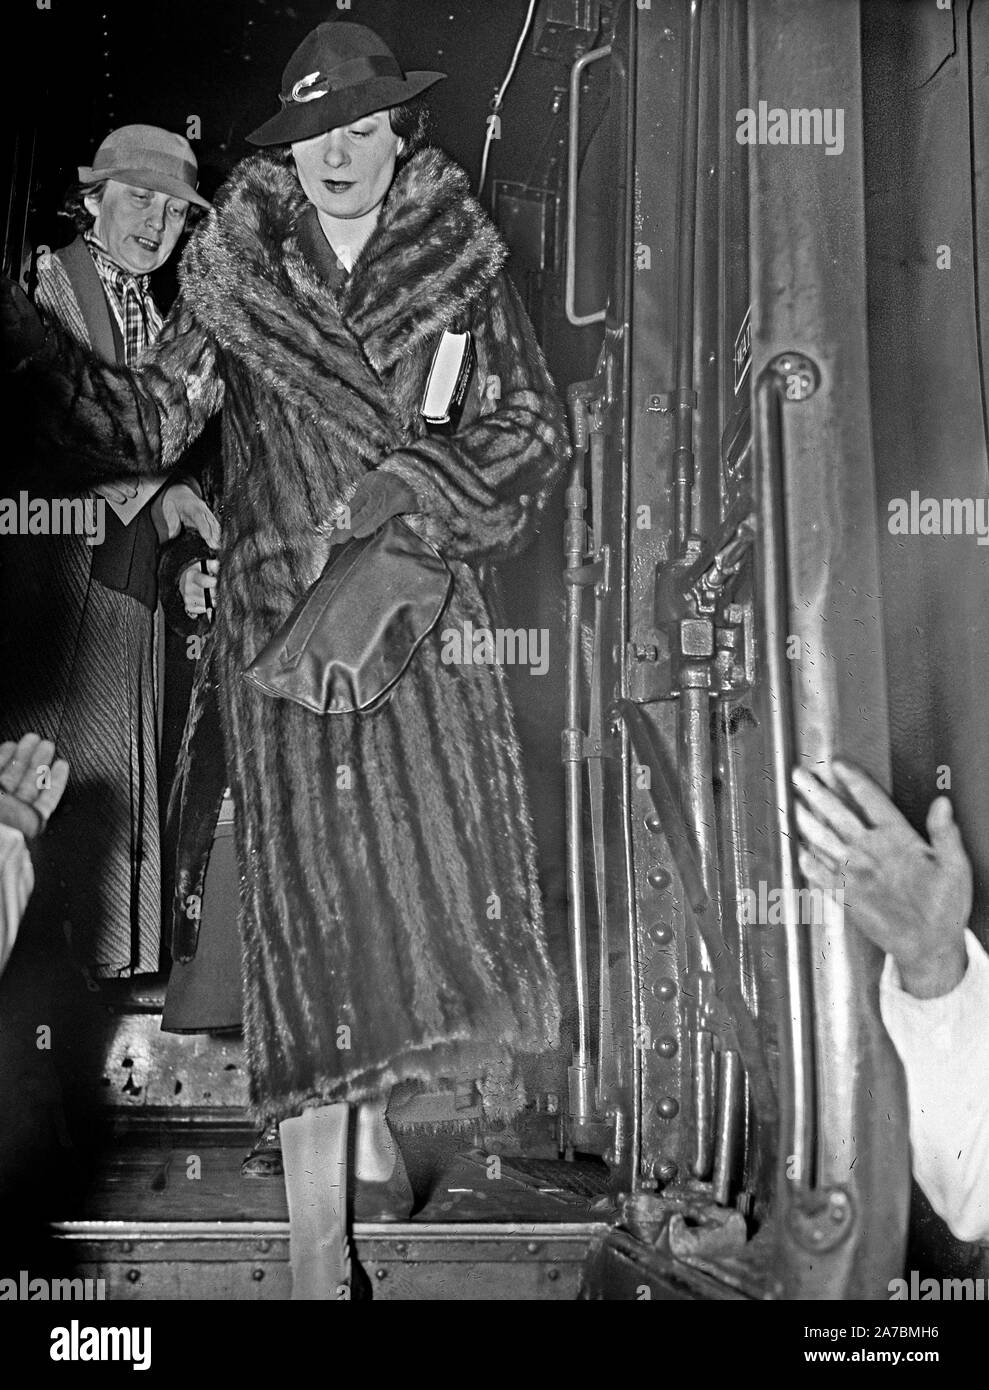 15 Great Depression Fur Coat High Resolution Stock Photography and ...